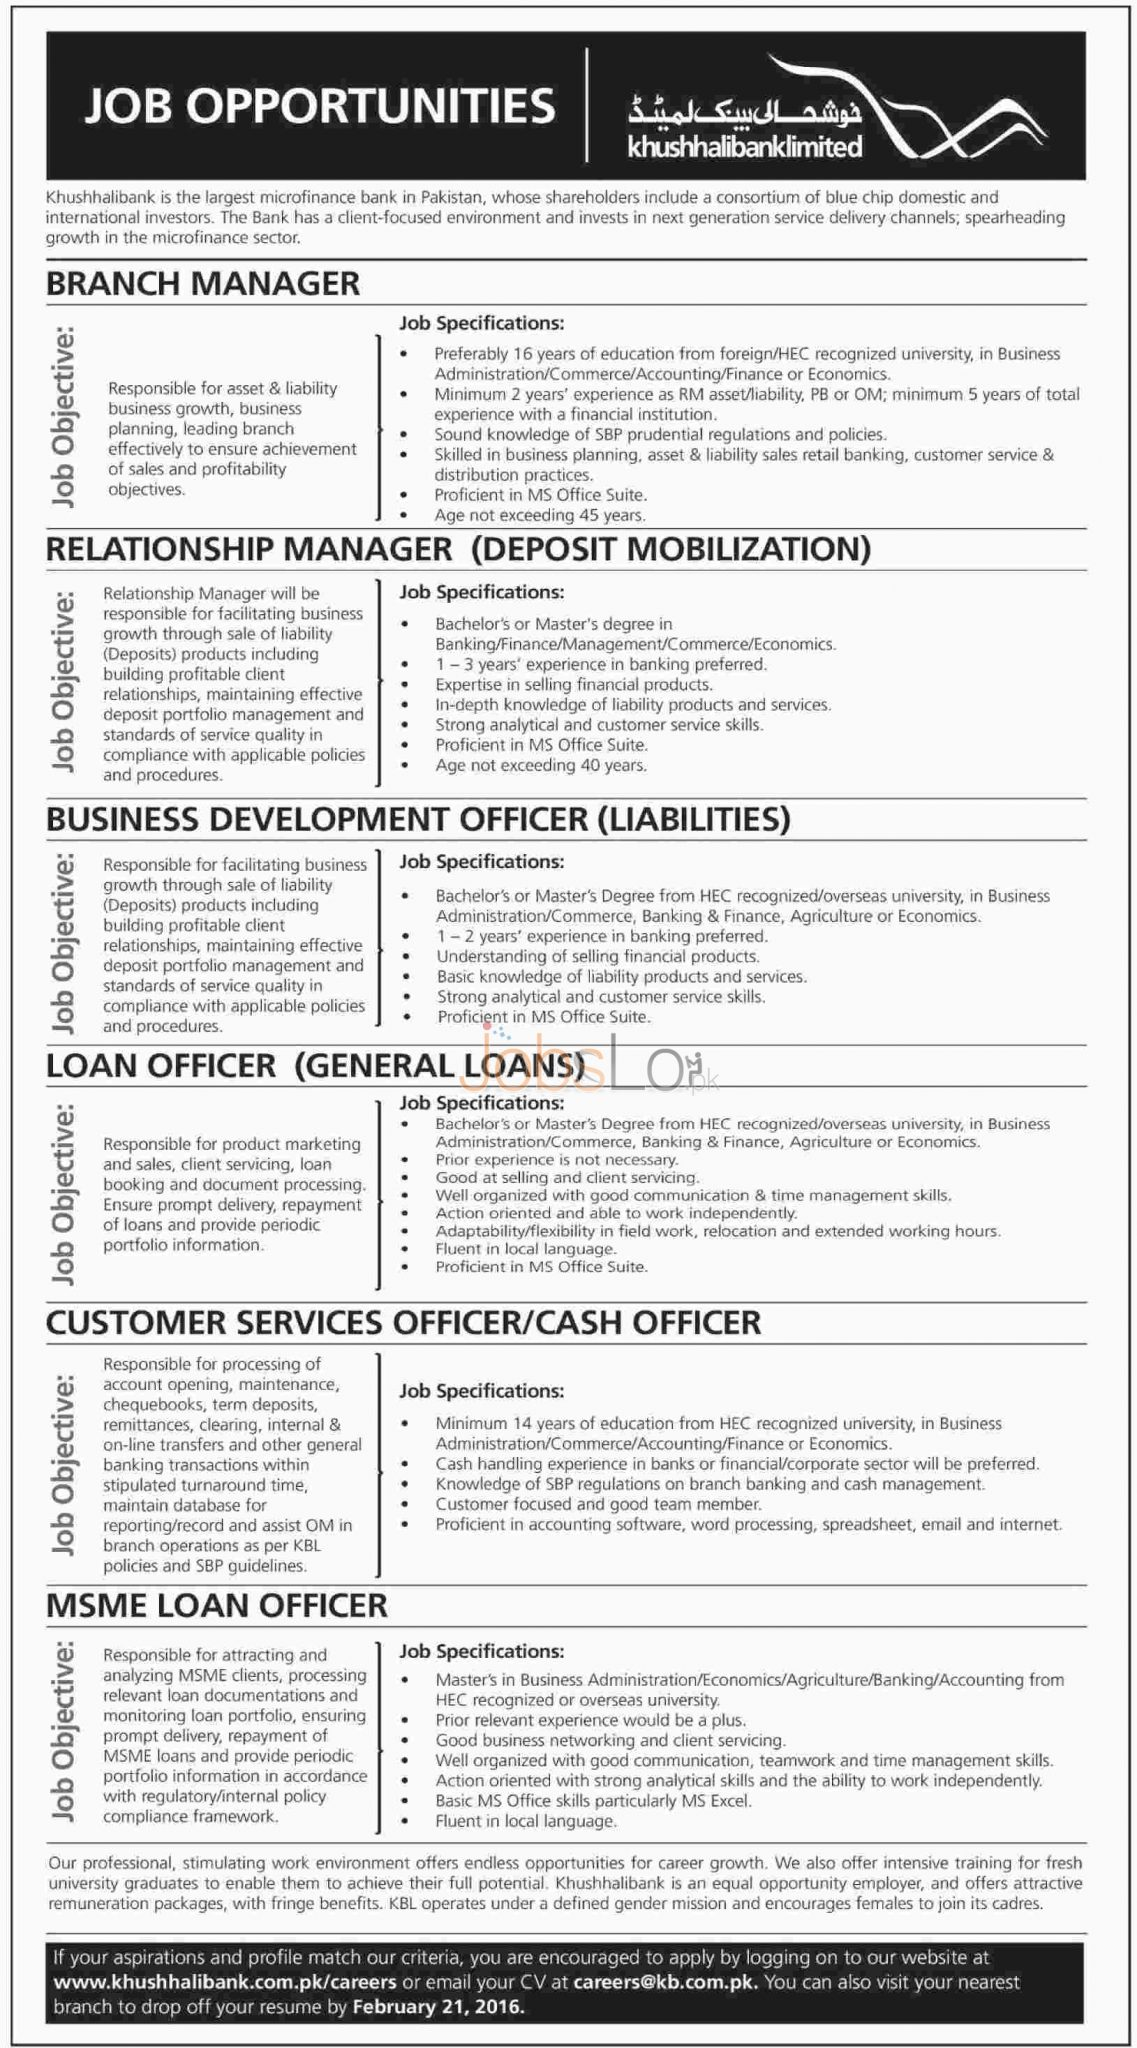 Khushhali Bank jobs February 2016 Career Opportunities